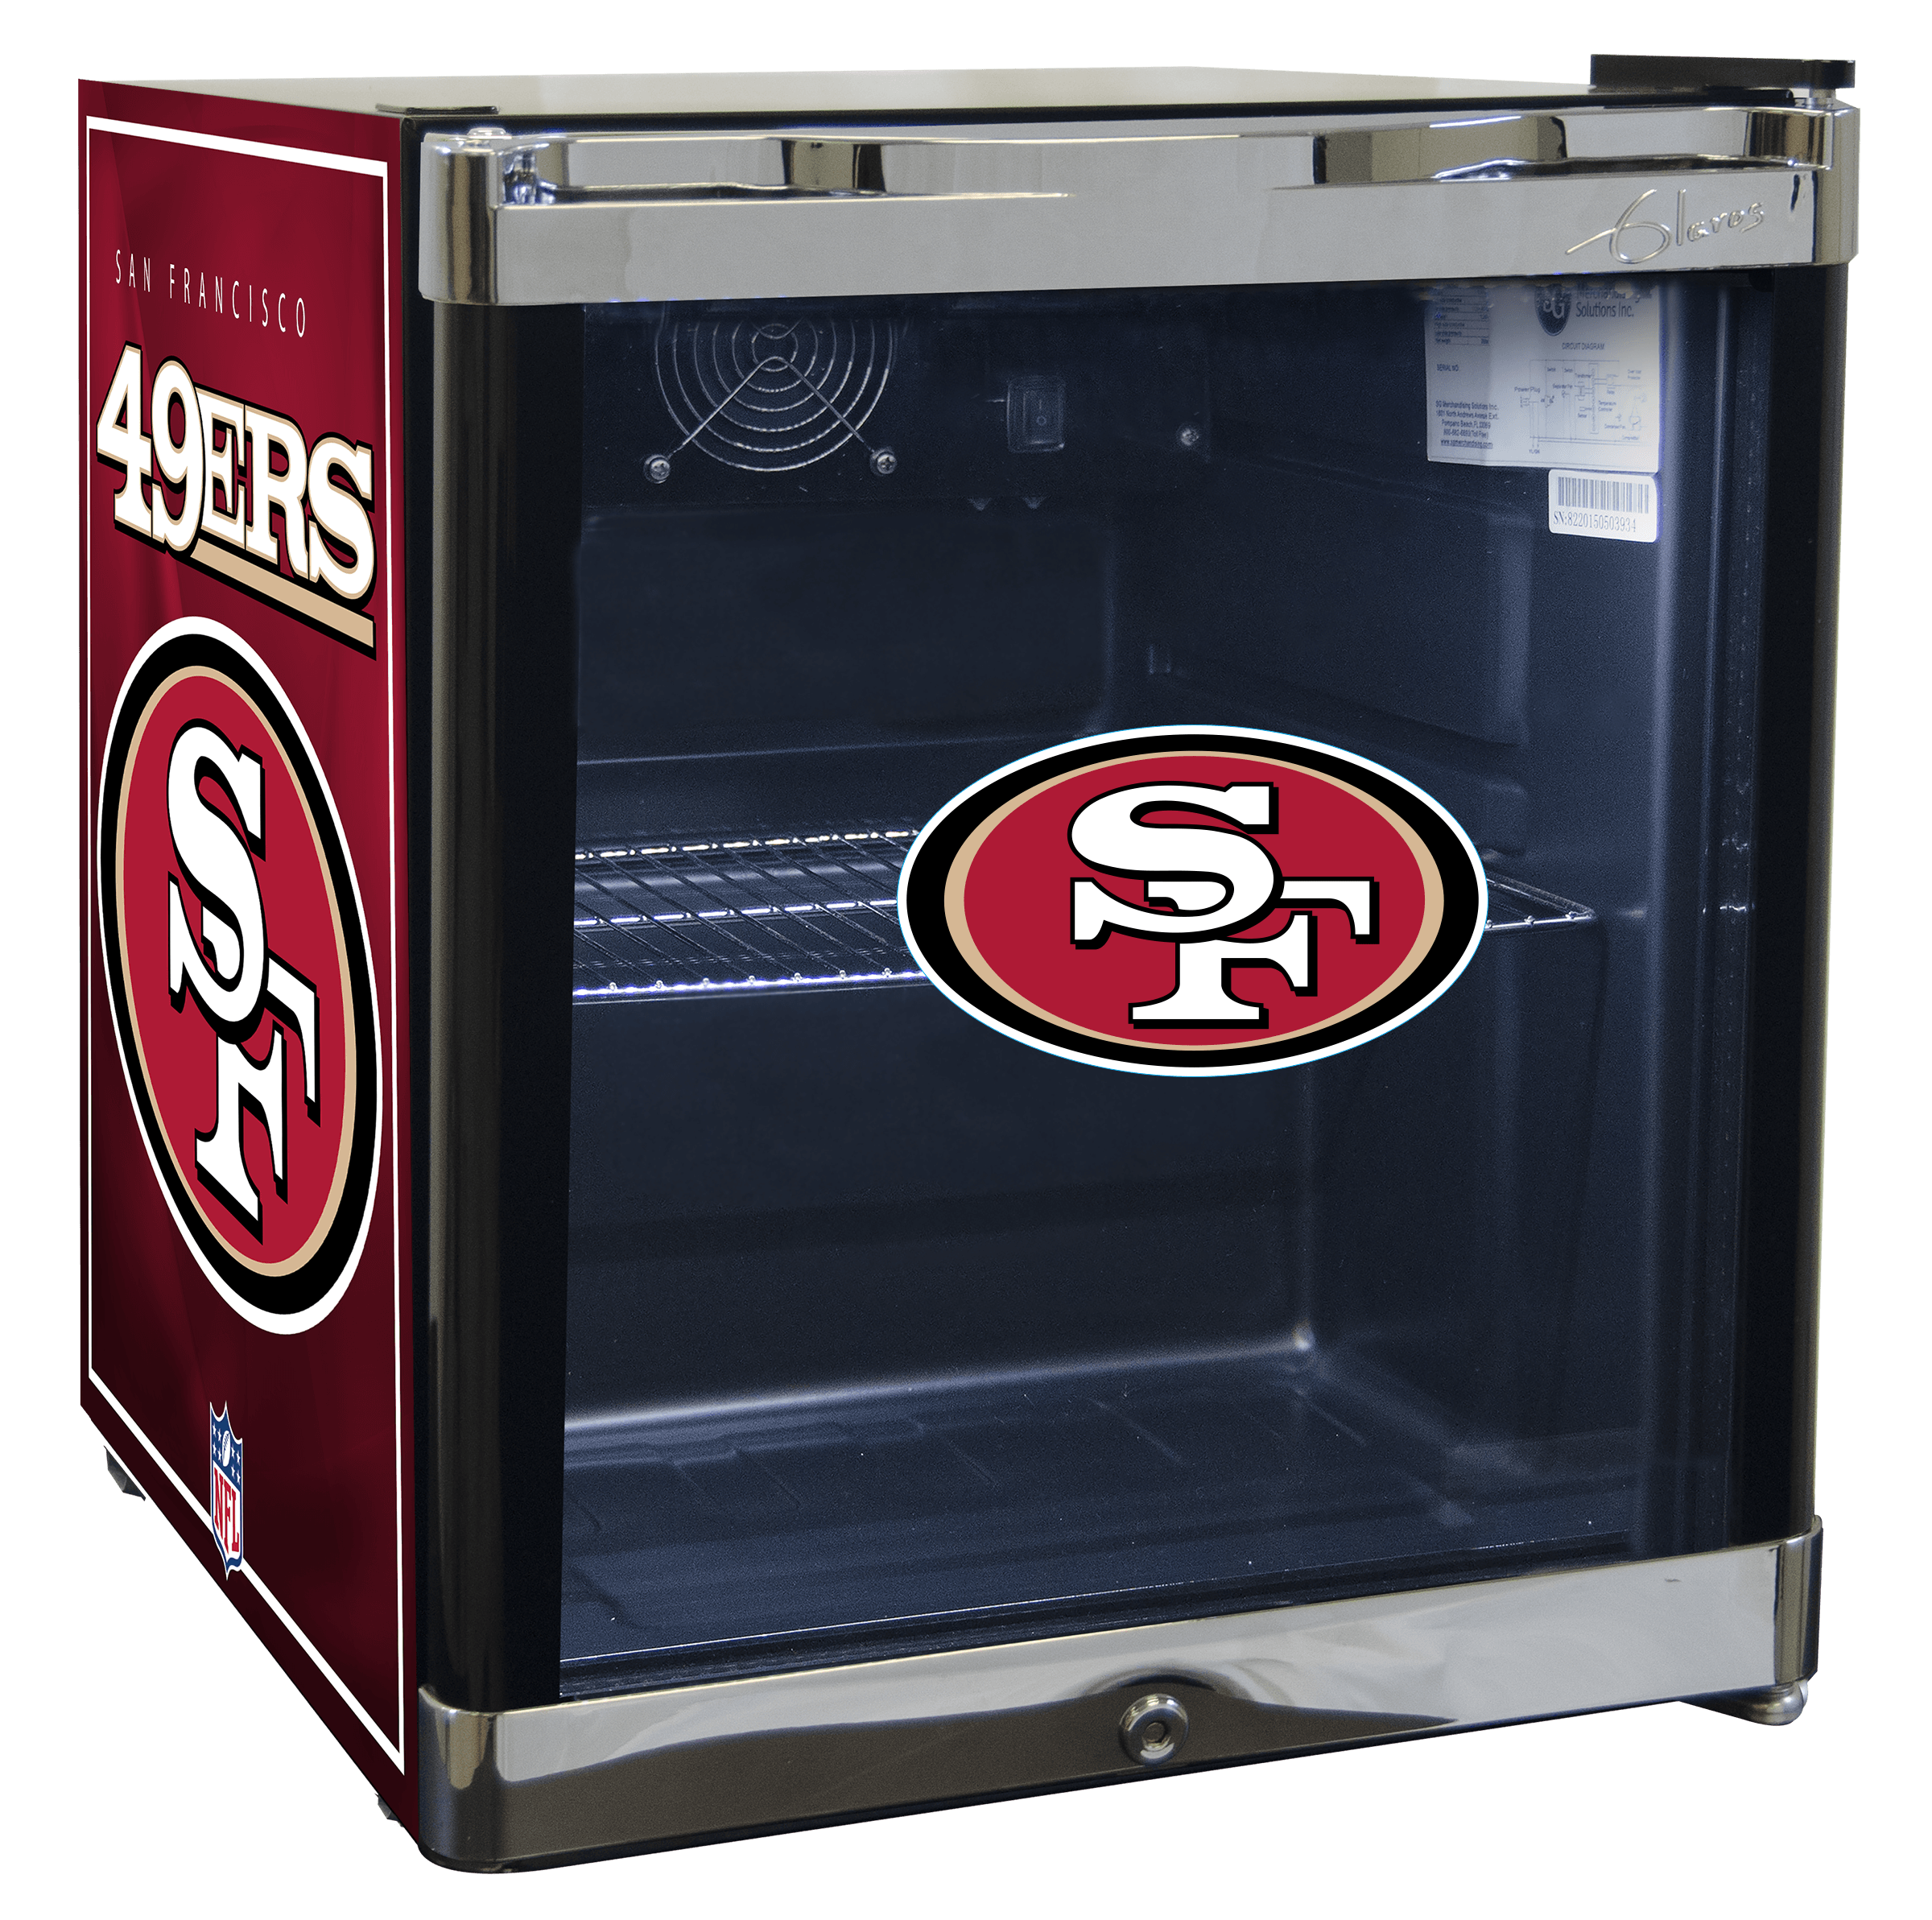 NFL Refrigerated Beverage Center 1.8 cu ft - Tampa Bay Buccaneers